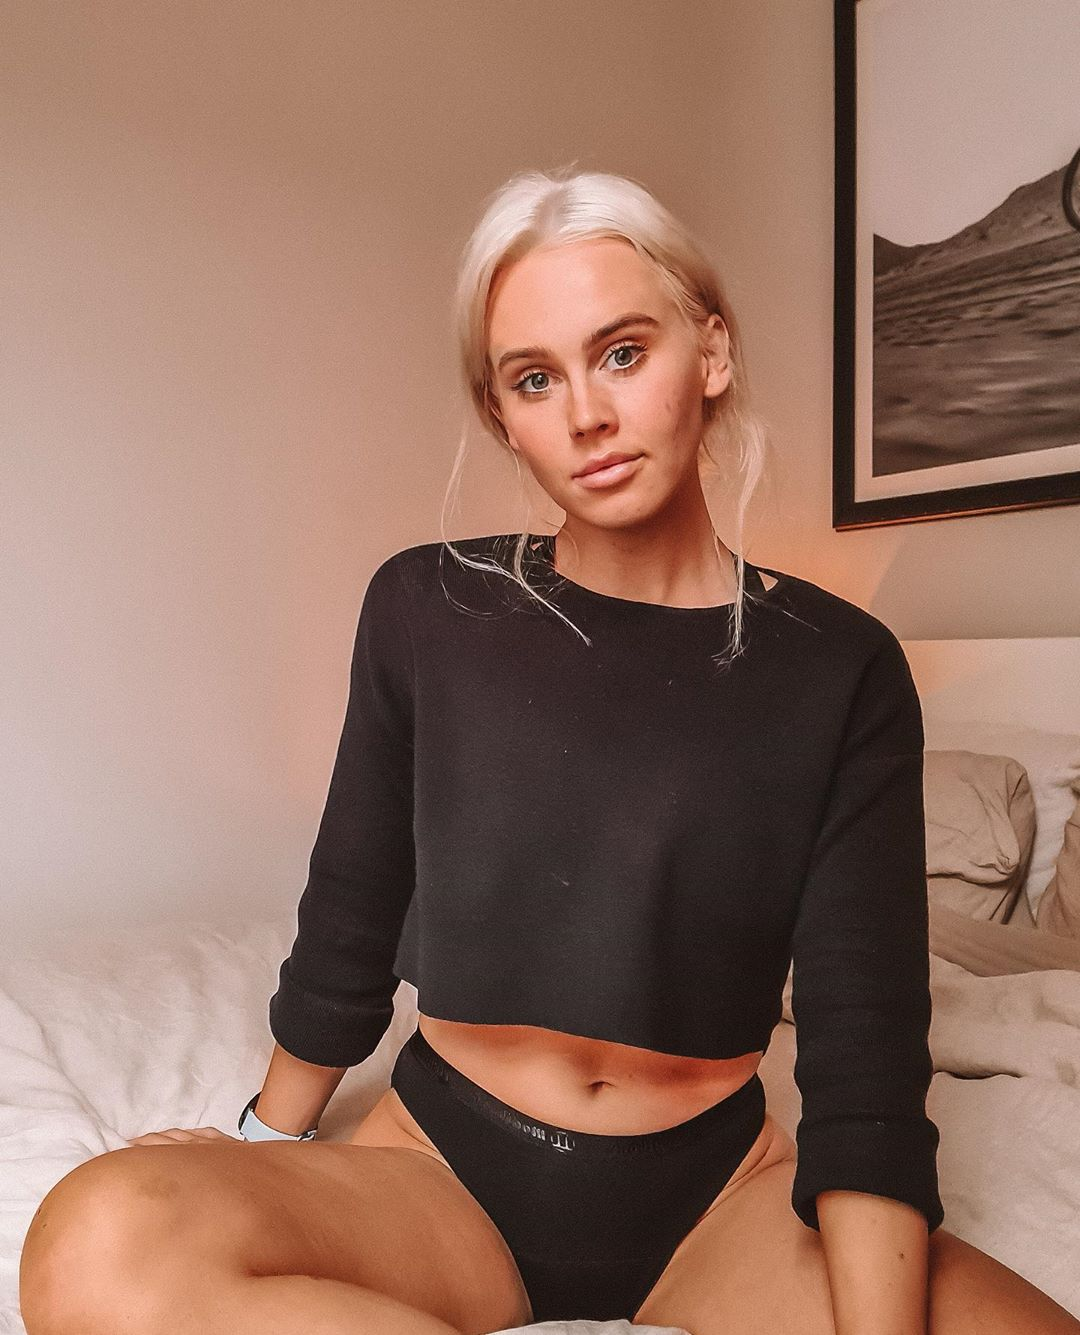 DJ Tigerlily Sits on her bed wearing a black cropped long sleeve top with black period-proof Modibodi underwear.